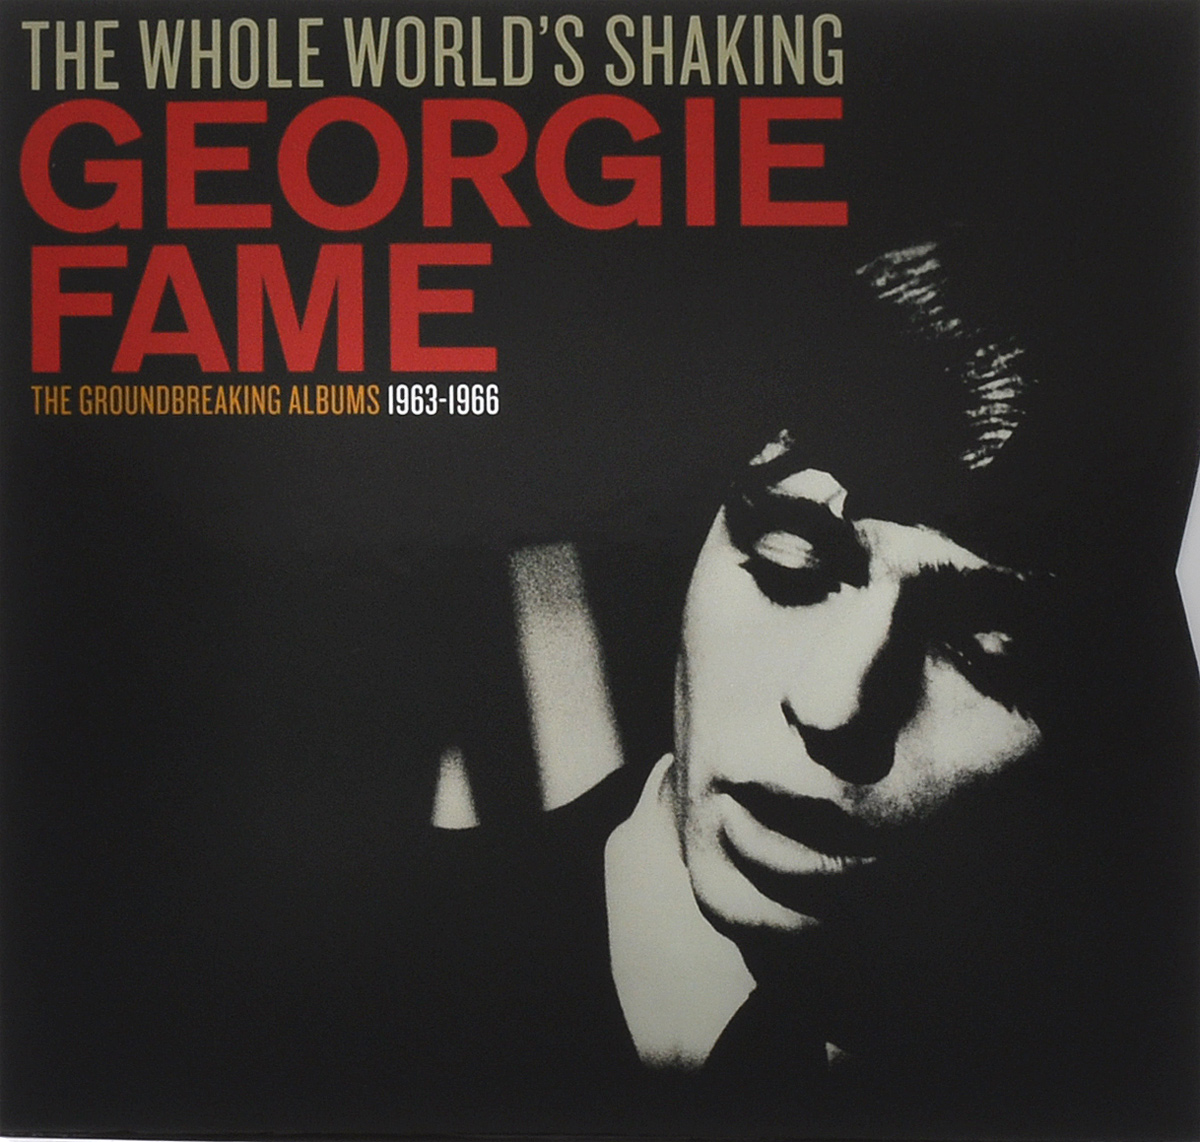 Джорджи Фэйм Georgie Fame. The Whole World's Shaking. The Groundbreaking Albums 1963-1966 (4 LP) 1 2